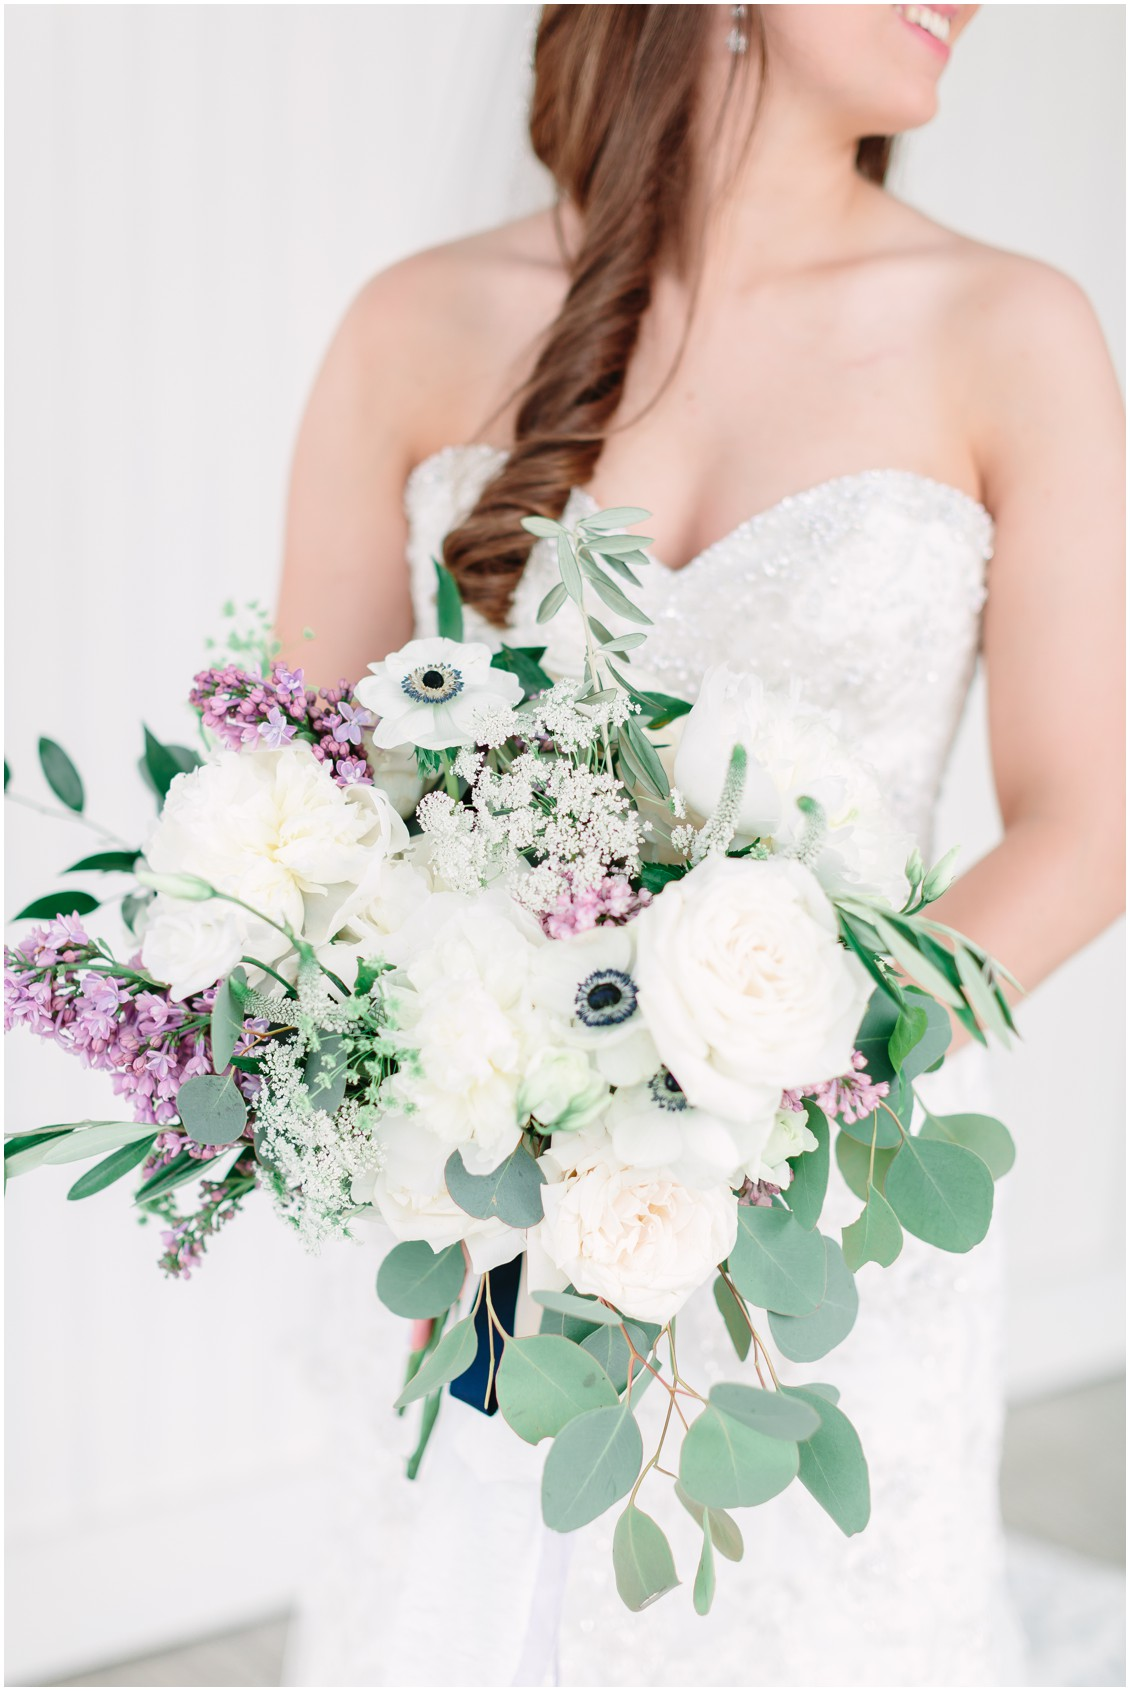 White and purple floral wedding bouquet | Bride in strapless, lace wedding gown | My Eastern Shore Wedding